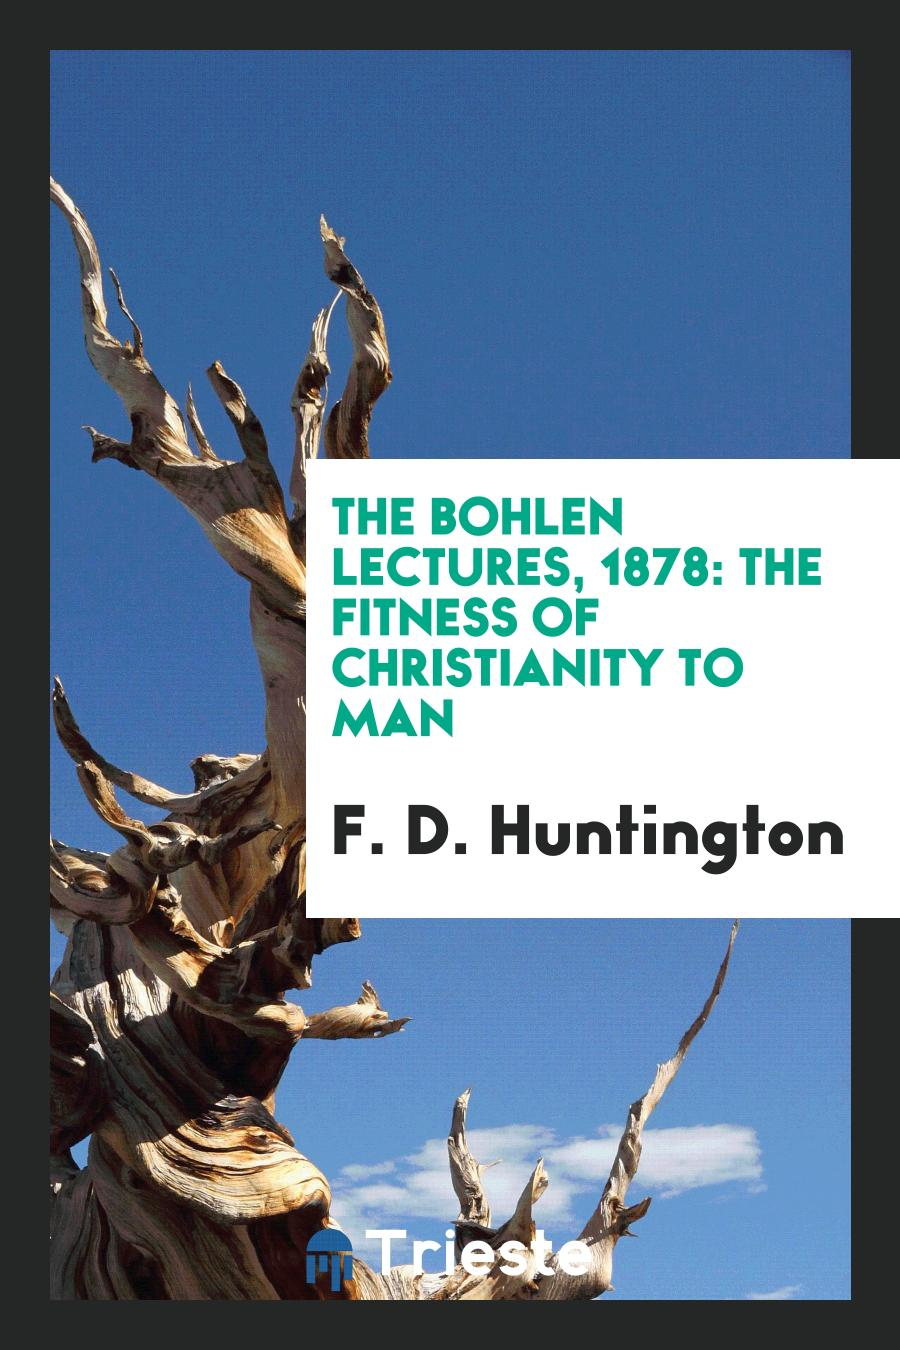 The Bohlen Lectures, 1878: The Fitness of Christianity to Man